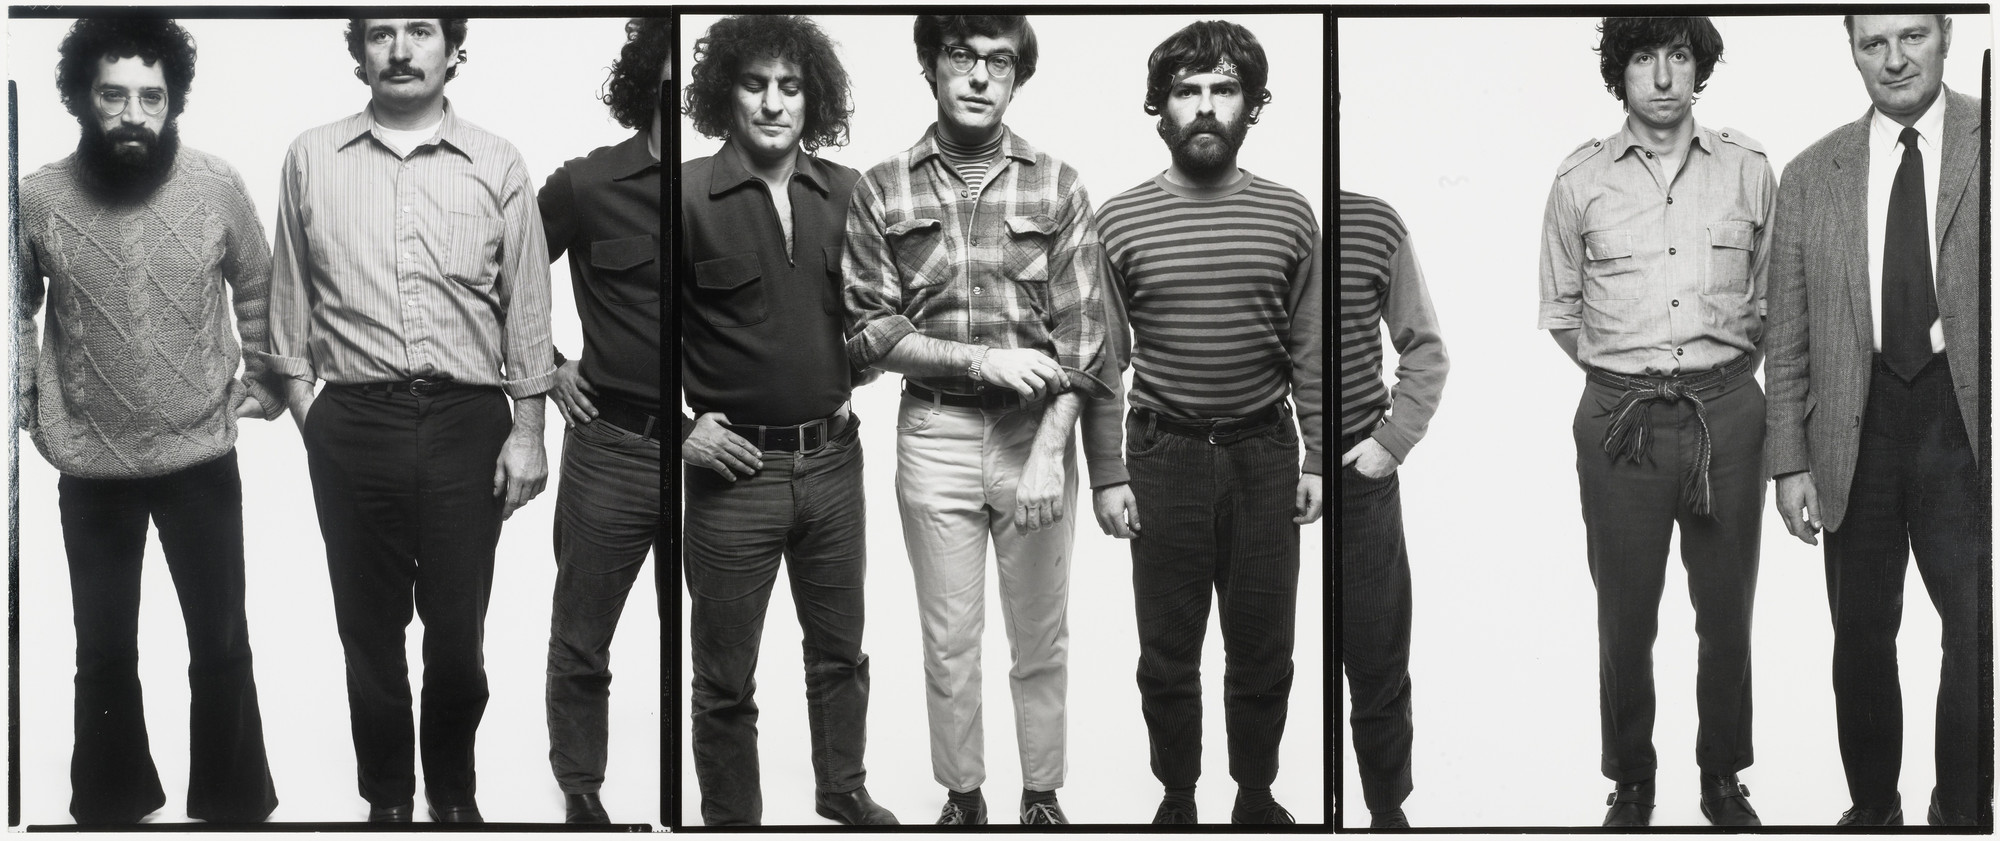 Richard Avedon. The Chicago Seven: Lee Weiner, John Fronies, Abbie Hoffman, Rennie Davis, Jerry Rubin, Tom Hayden, Dave Dellinger. Chicago. September 25, 1969